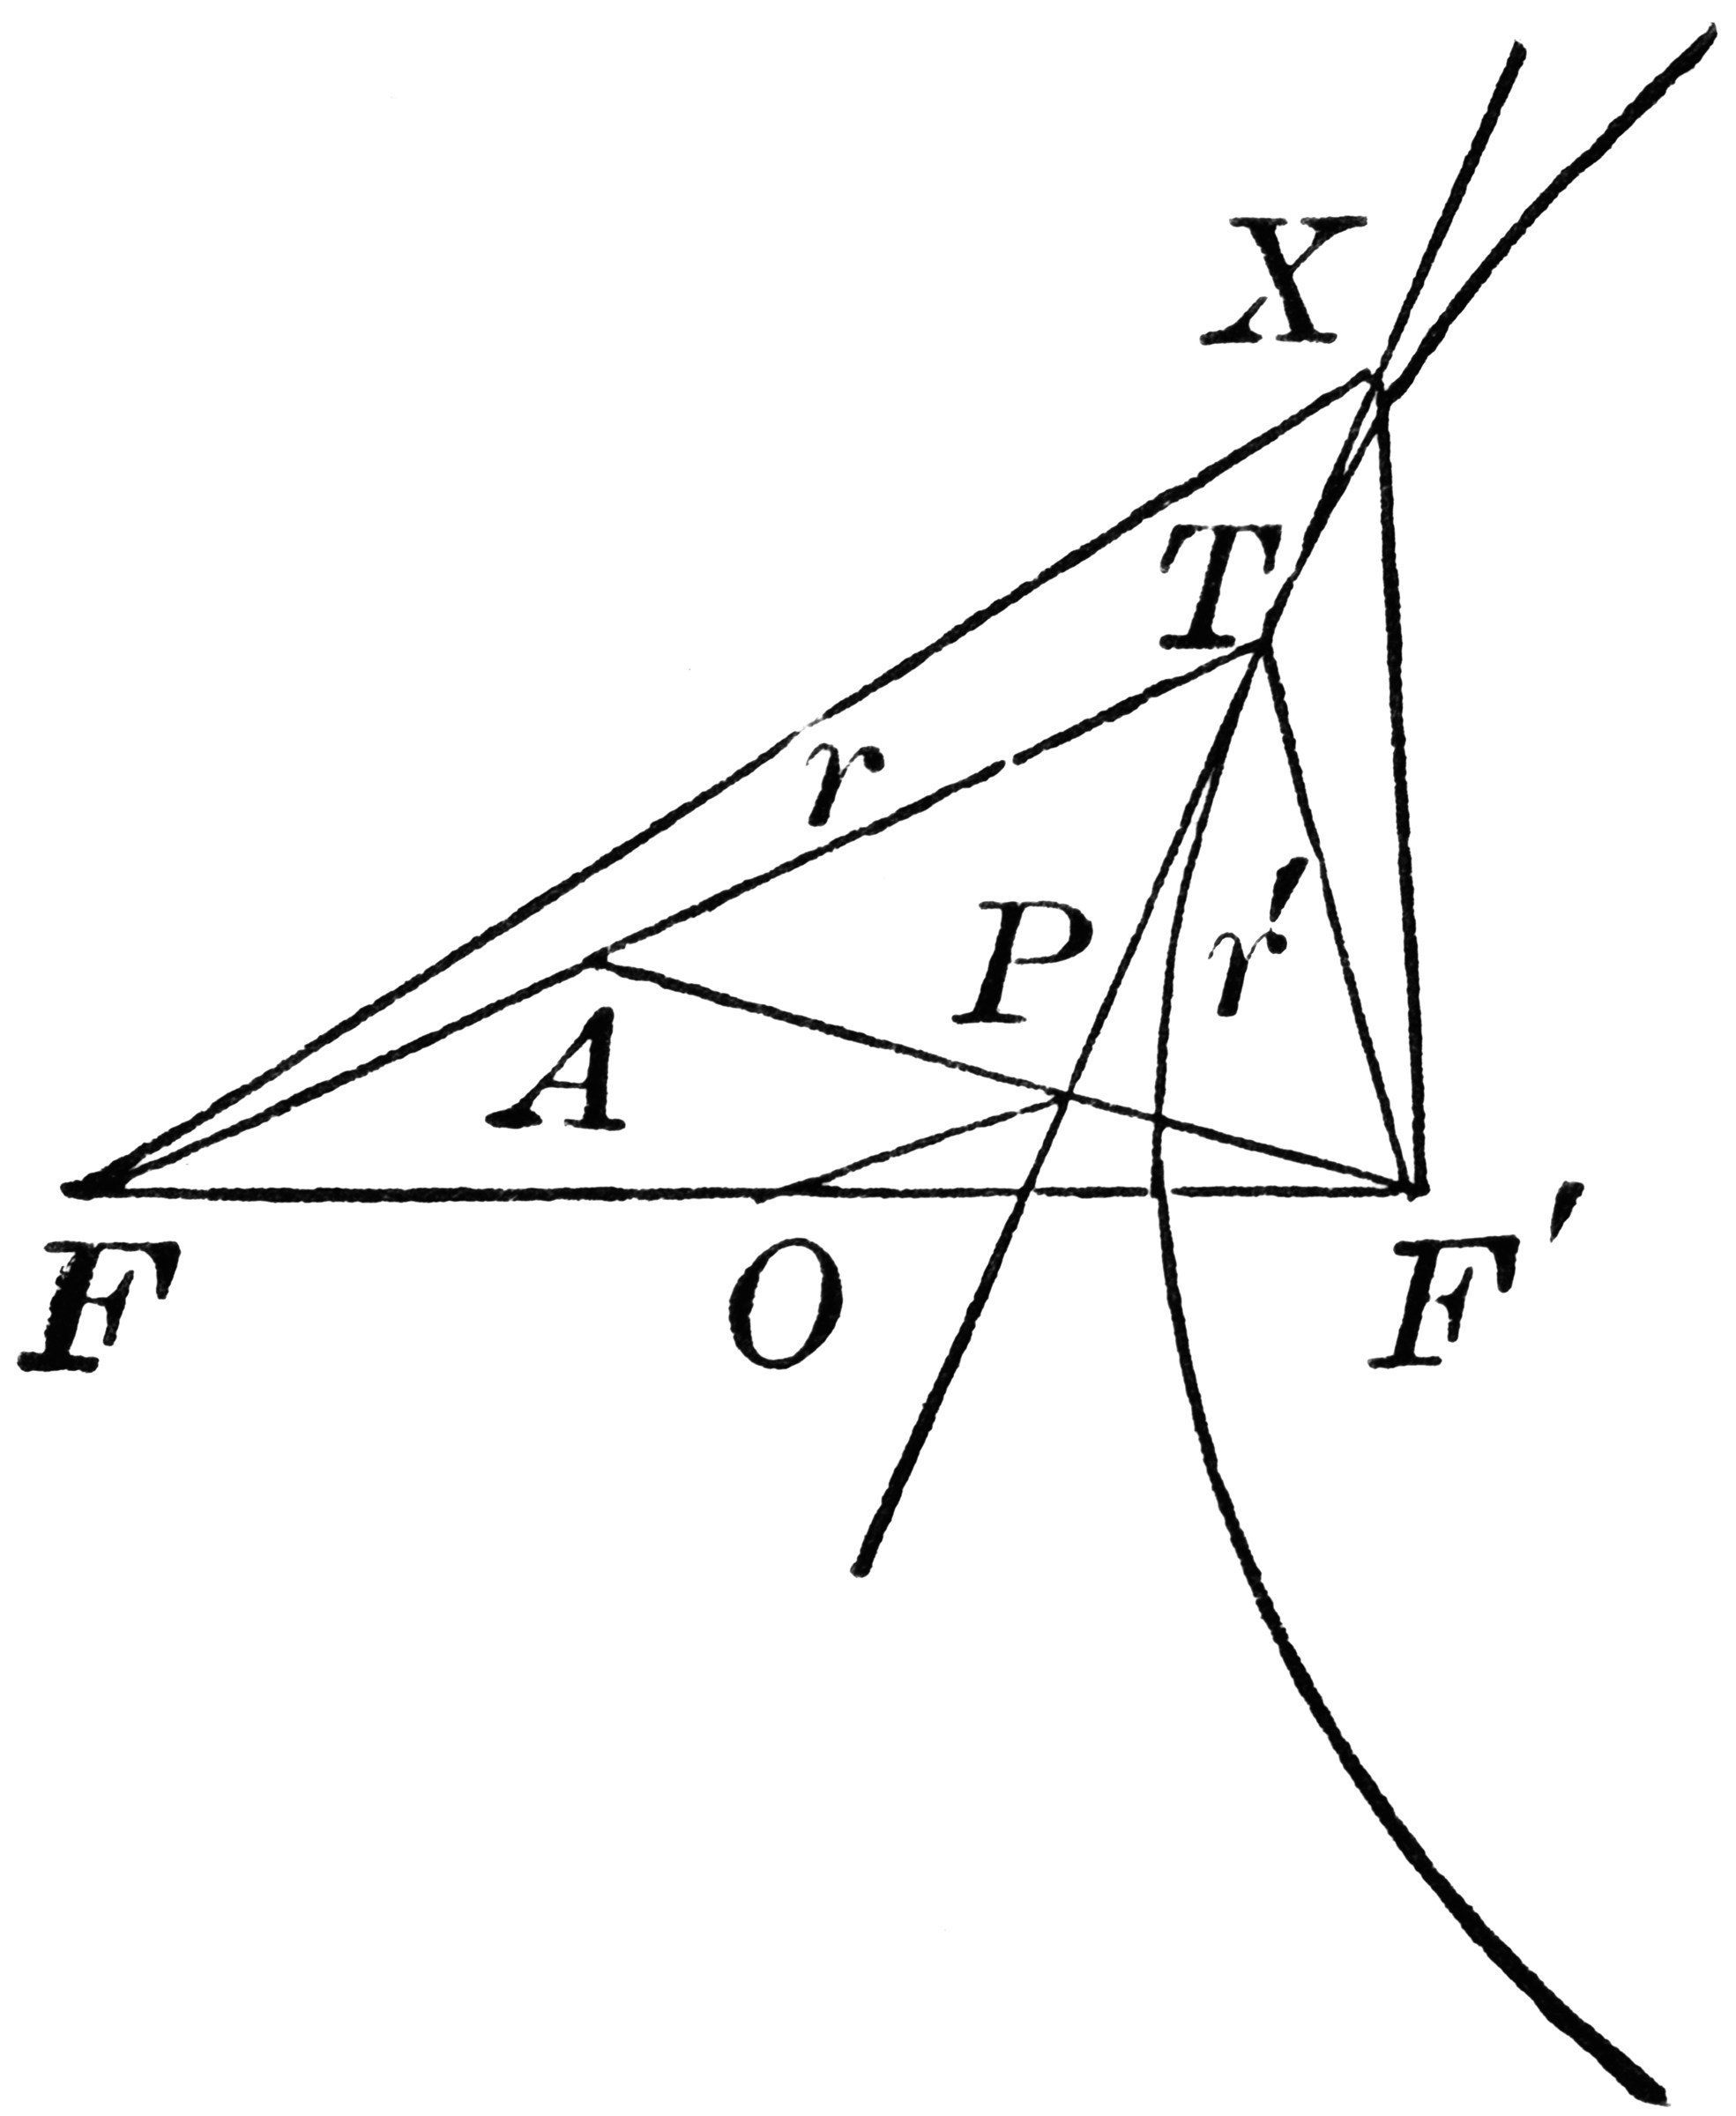 conic sections diagram 02 ford focus belt tangent to a hyperbola clipart etc